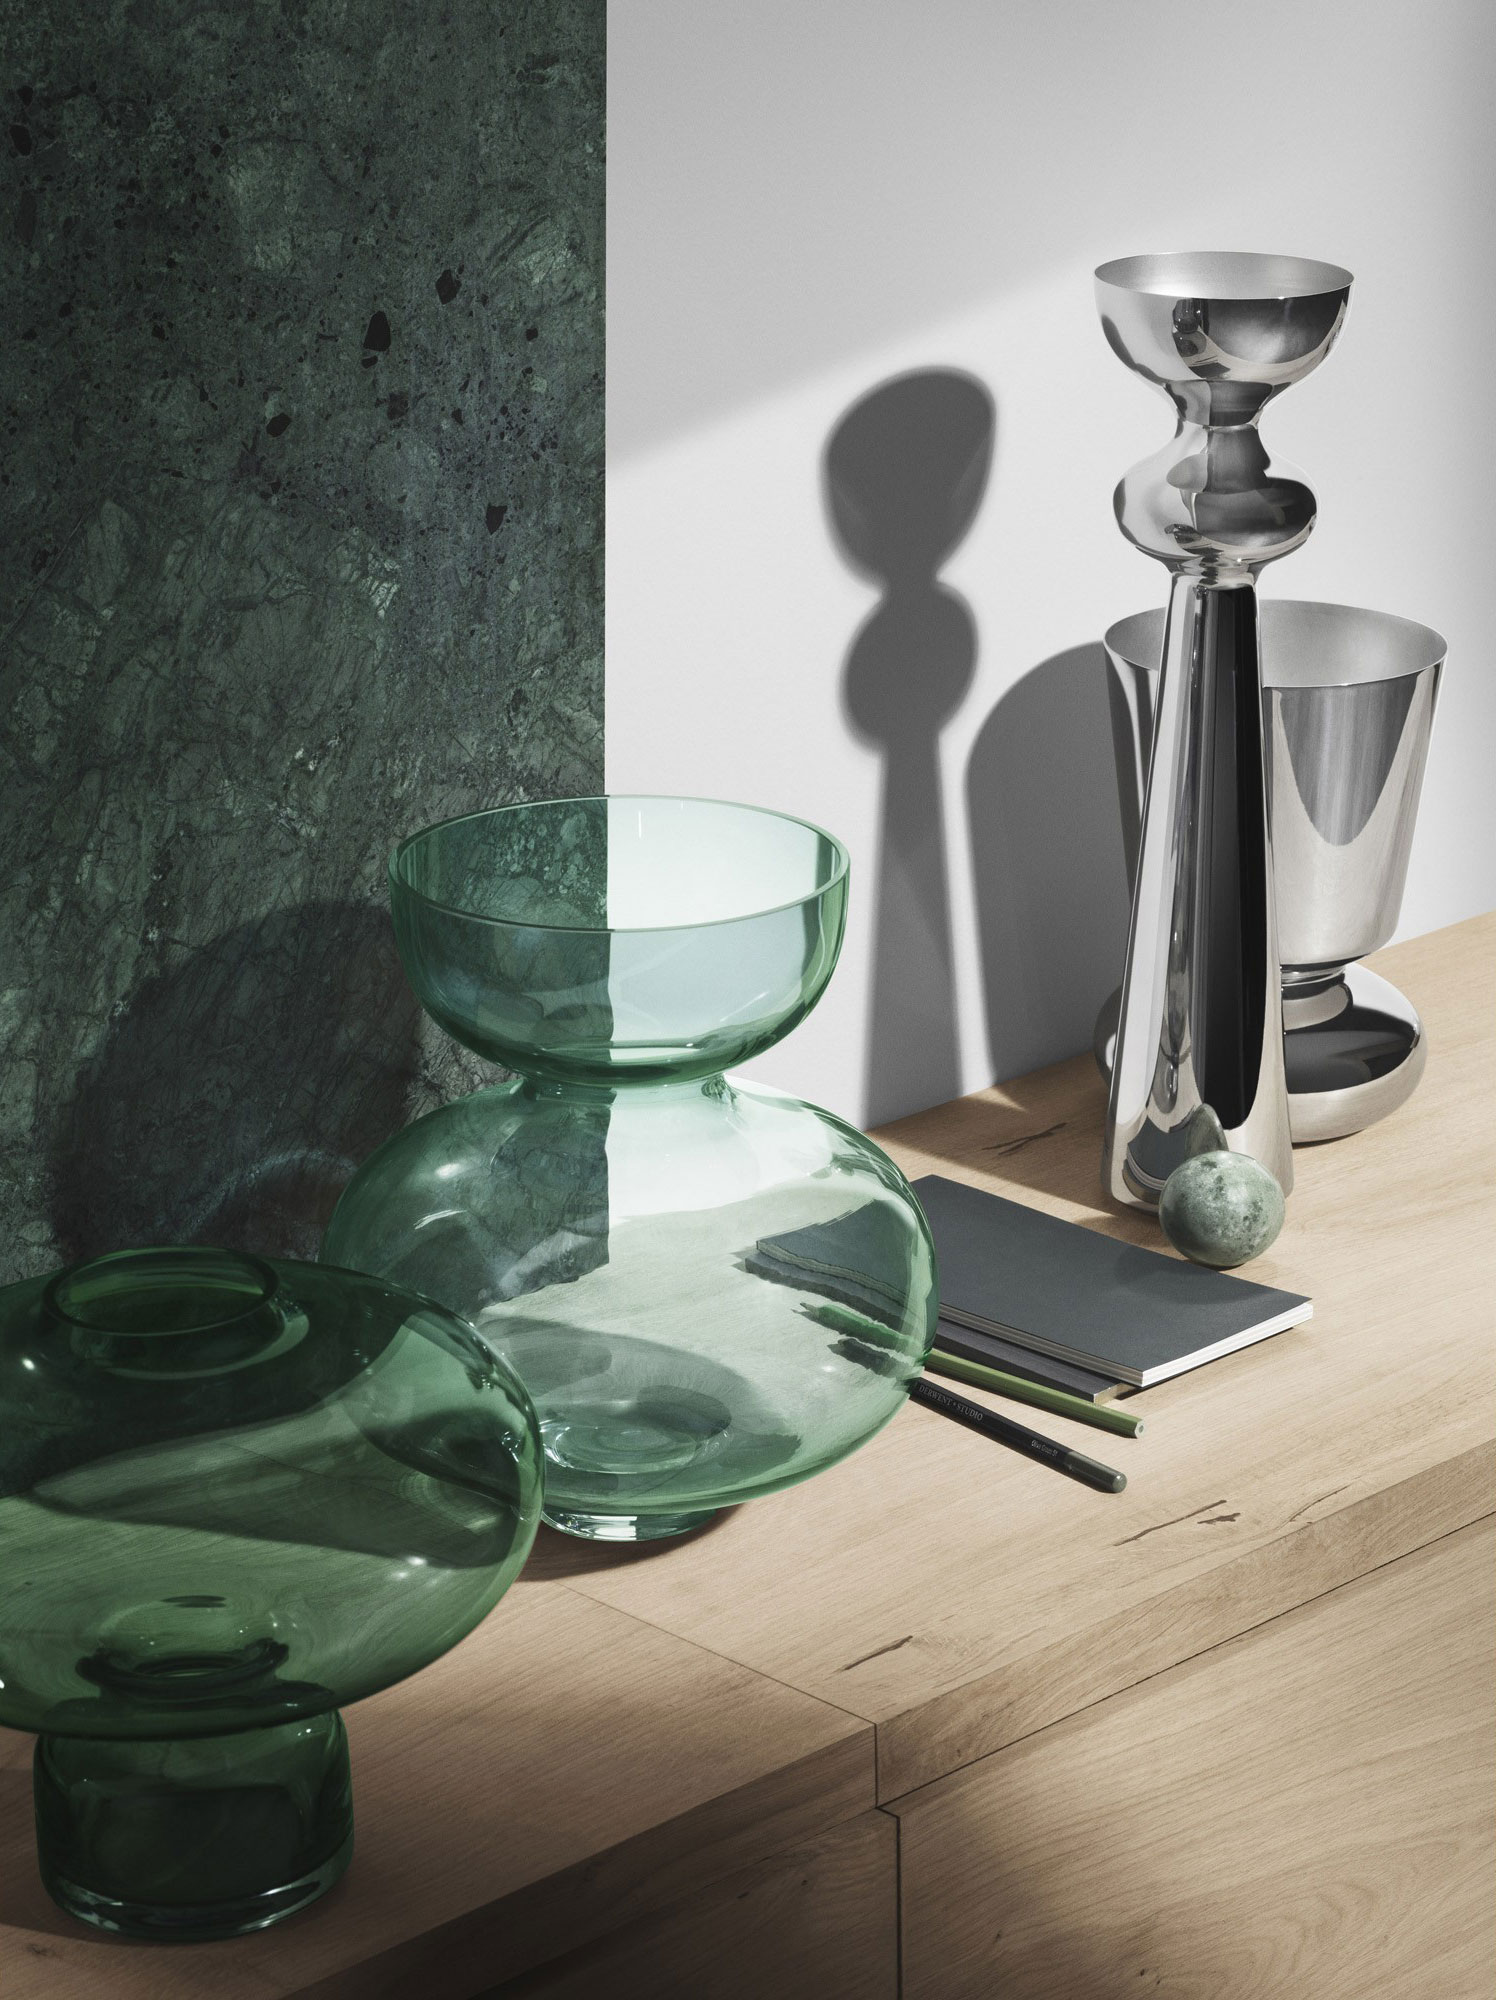 Steel and glass homeware collection